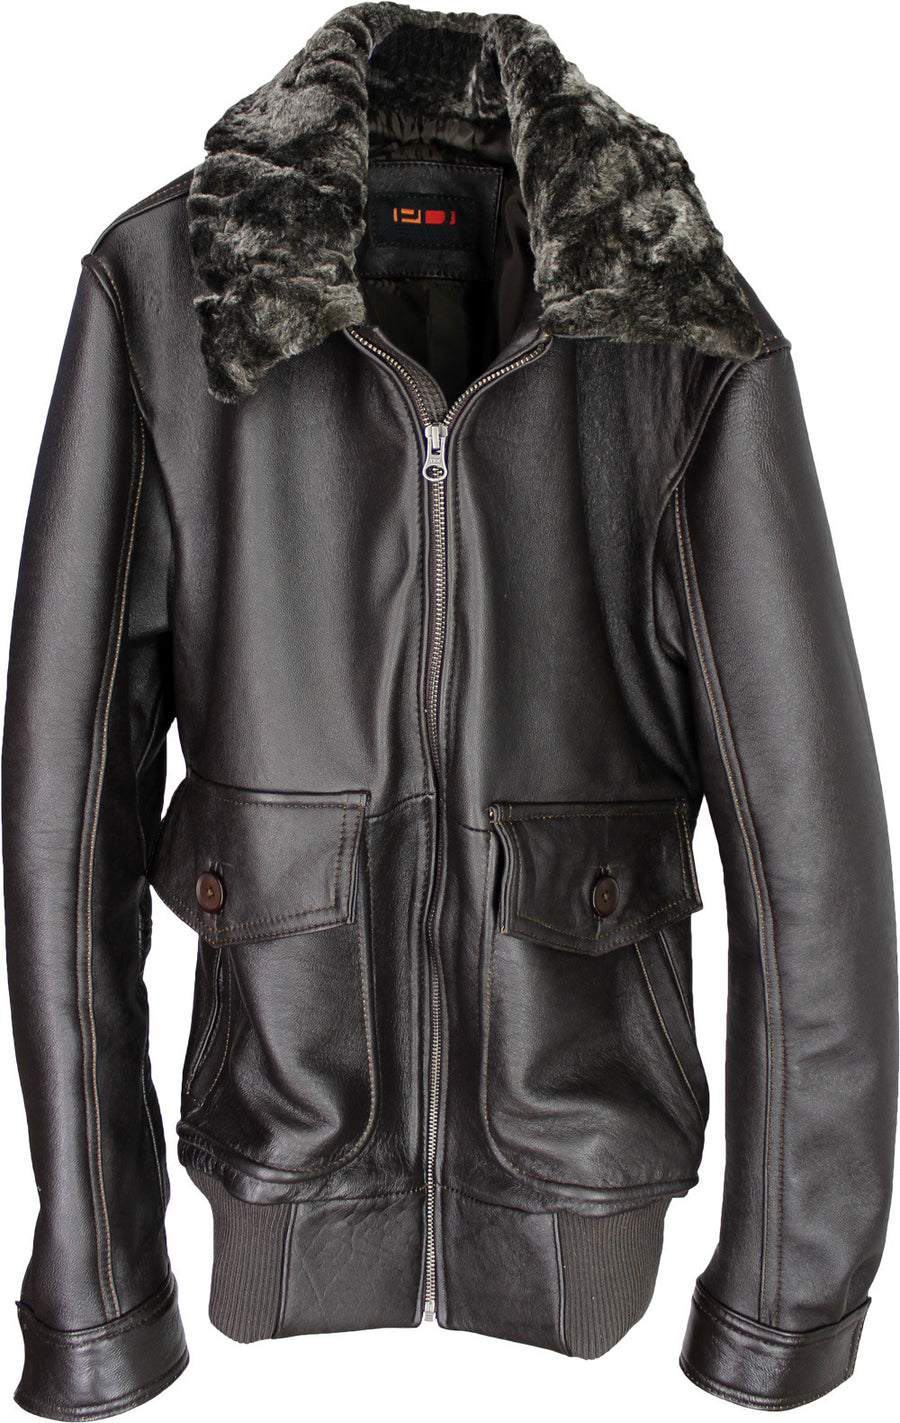 BELL 59 Leather Pilot Jacket Shearling  Distressed Dark Brown